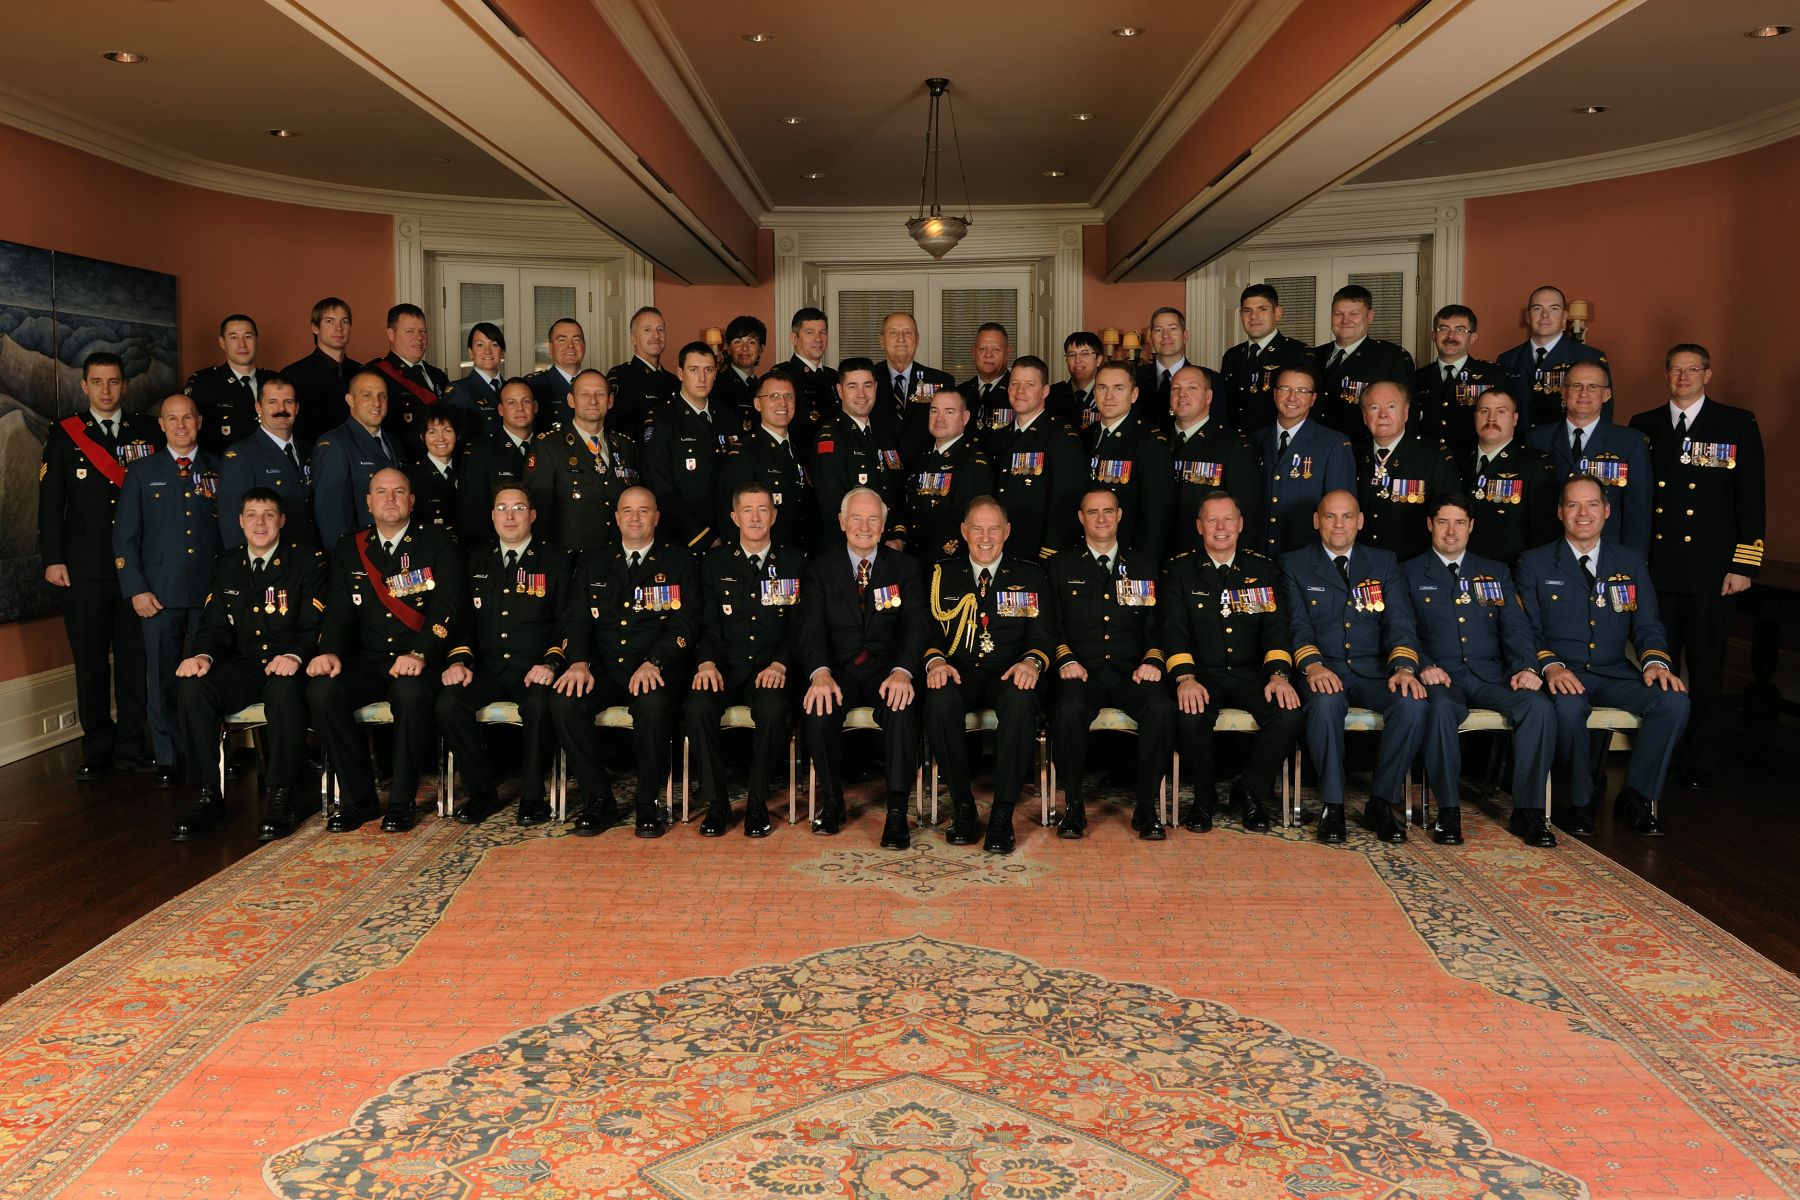 His Excellency the Right Honourable David Johnston, Governor General of Canada, and General Walt Natynczyk, Chief of the Defence Staff, are pictured with the 45 recipients who were presented with military decorations.